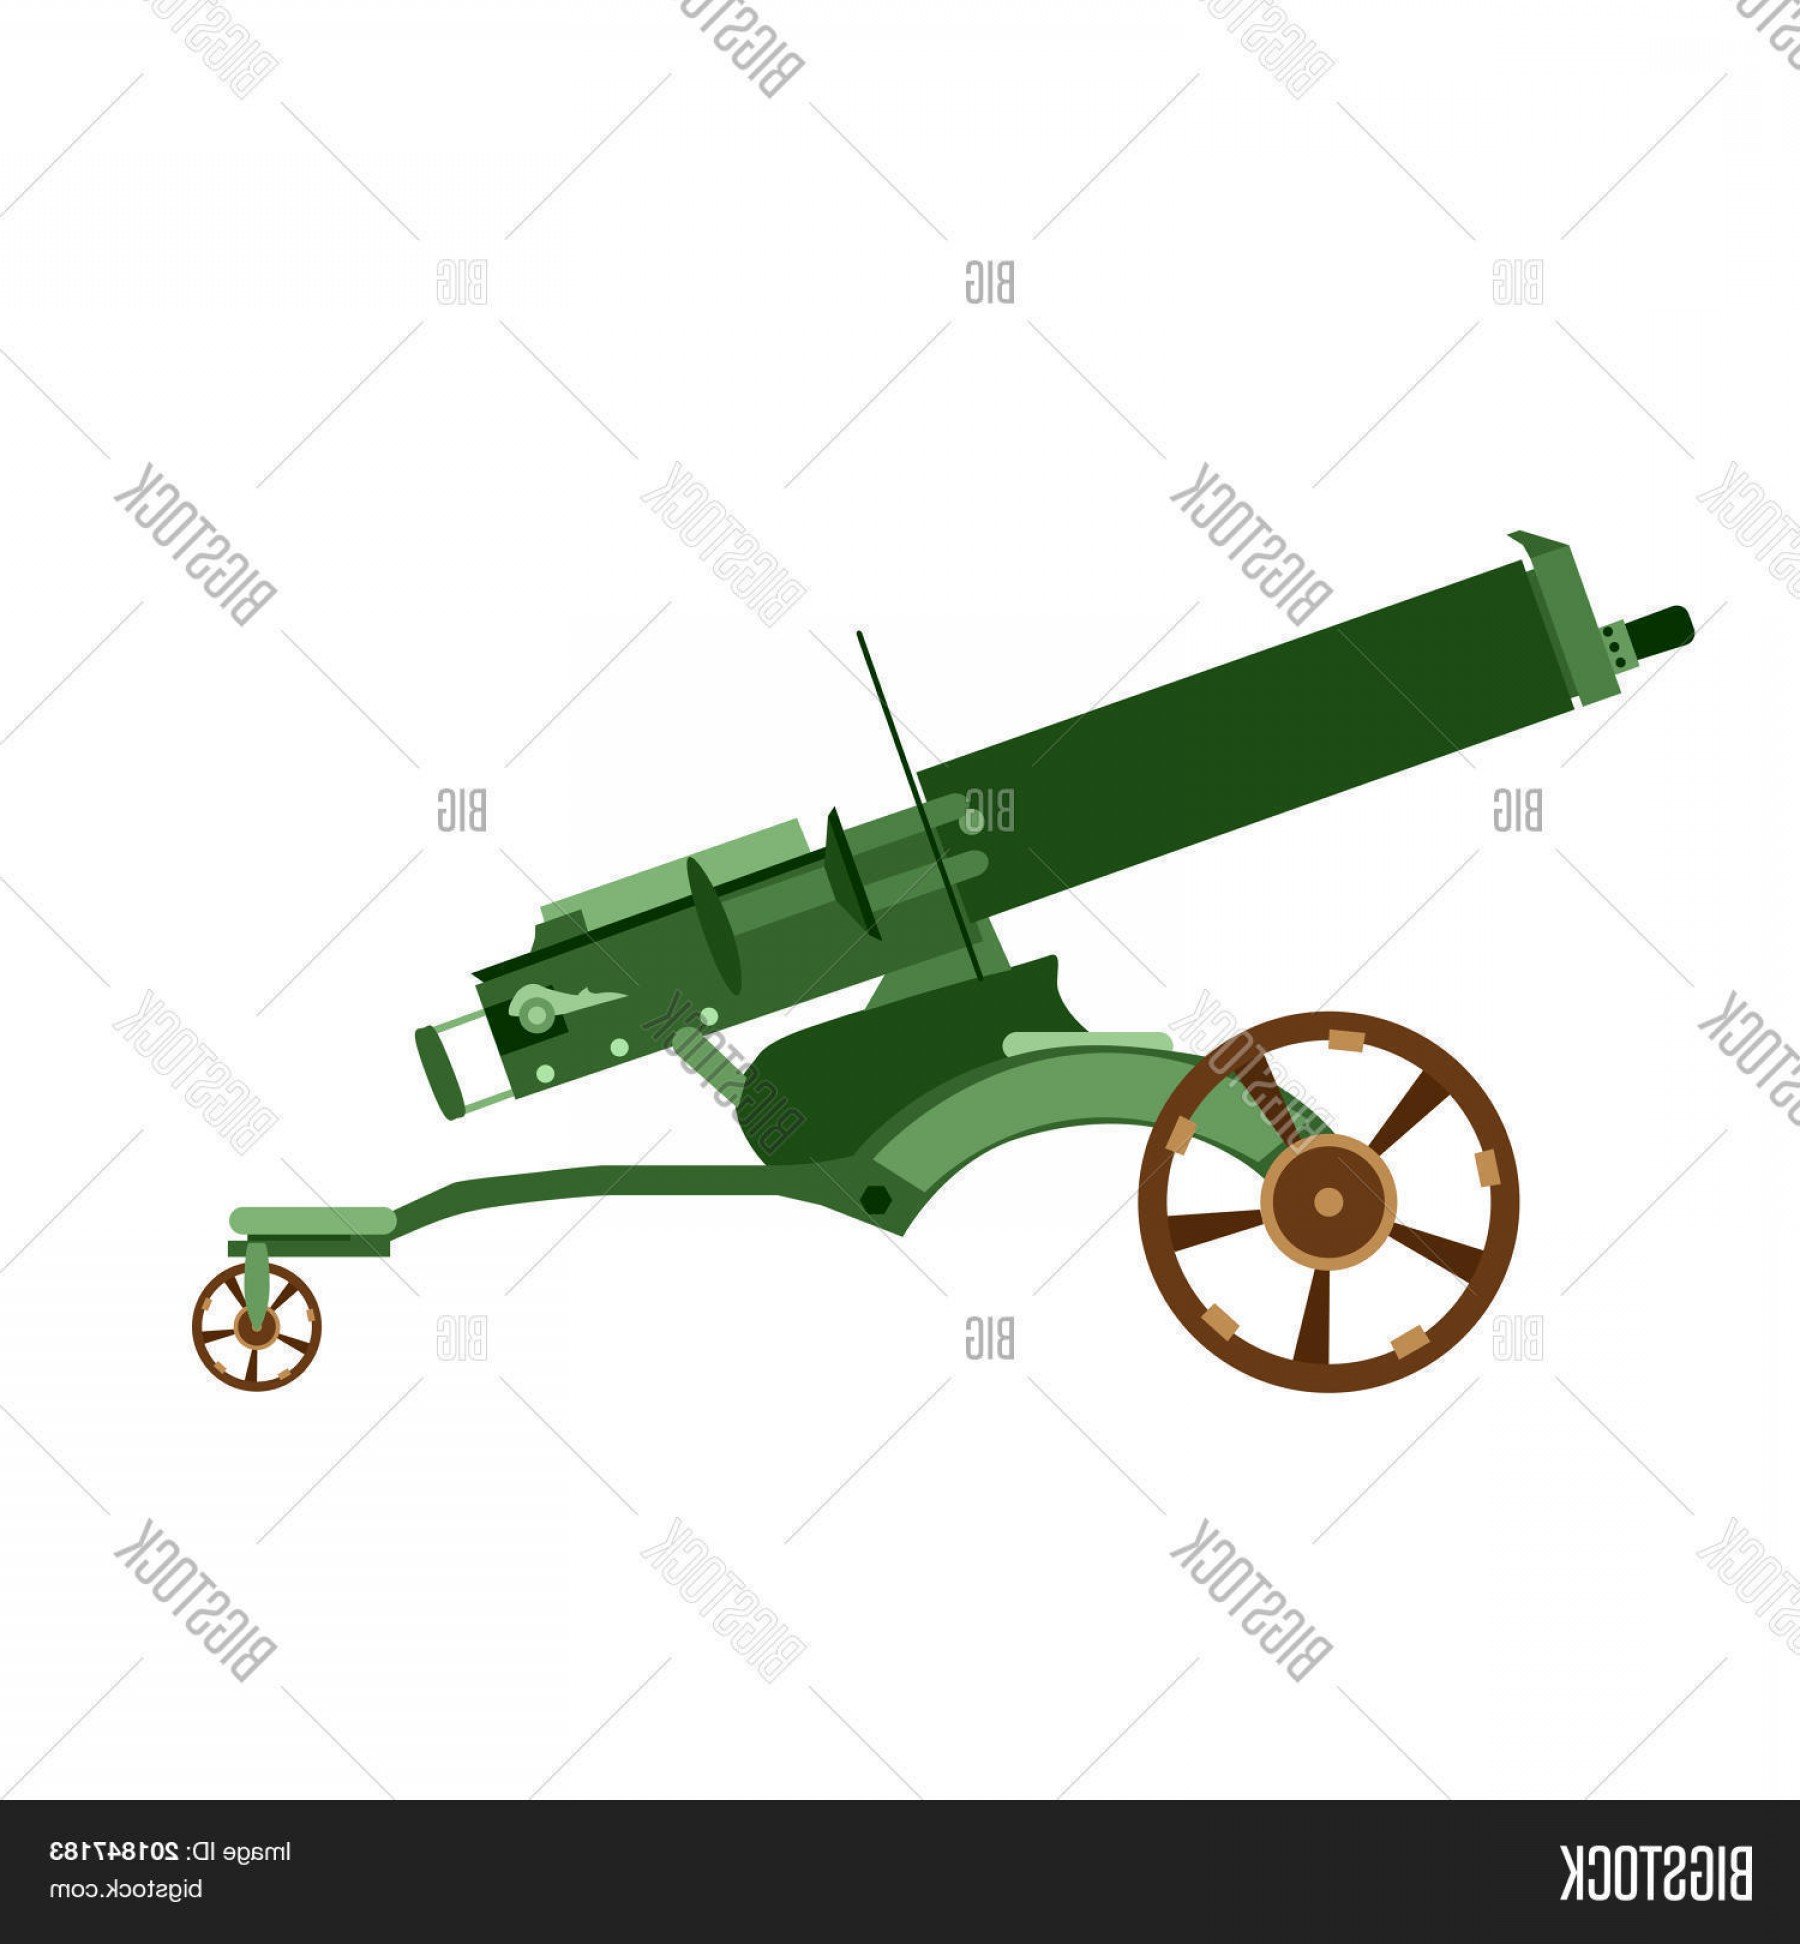 Vector Ancient Battle: Stock Vector Cannon Artillery Gun Vector War Old Army Weapon Military Illustration Ancient Icon Battle Isolated